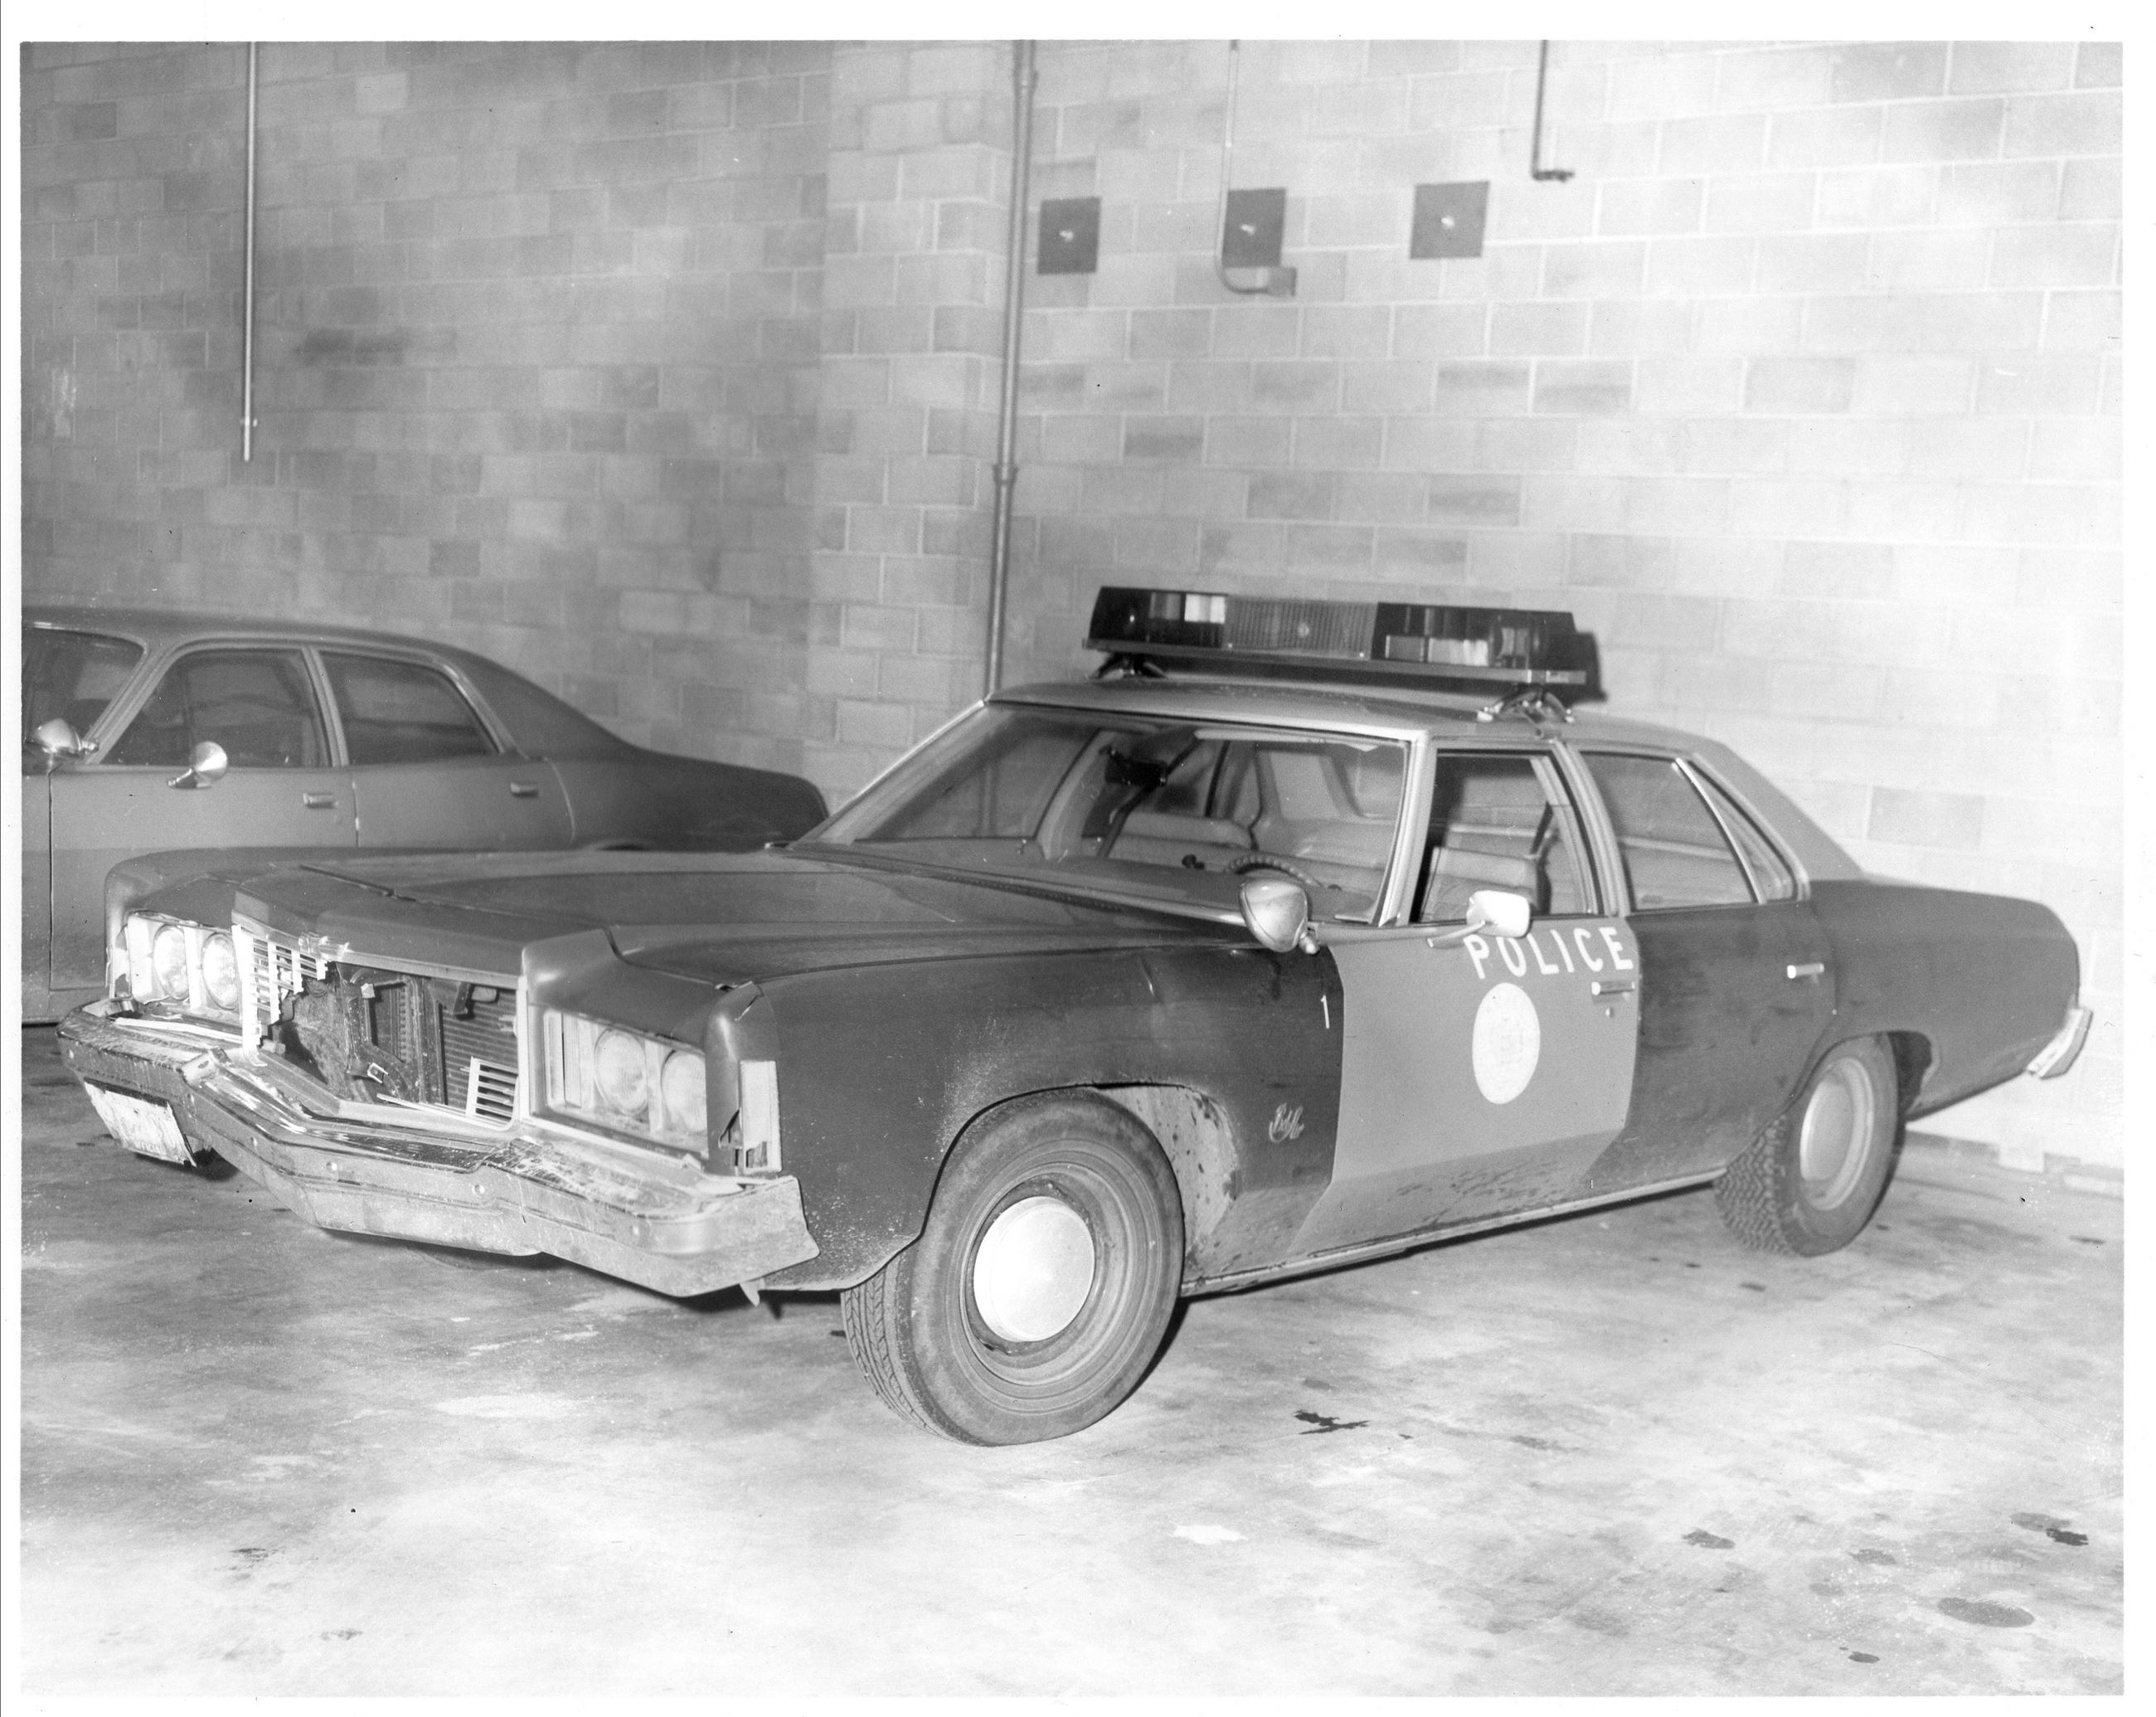 1970's Era Malden Police Cruiser